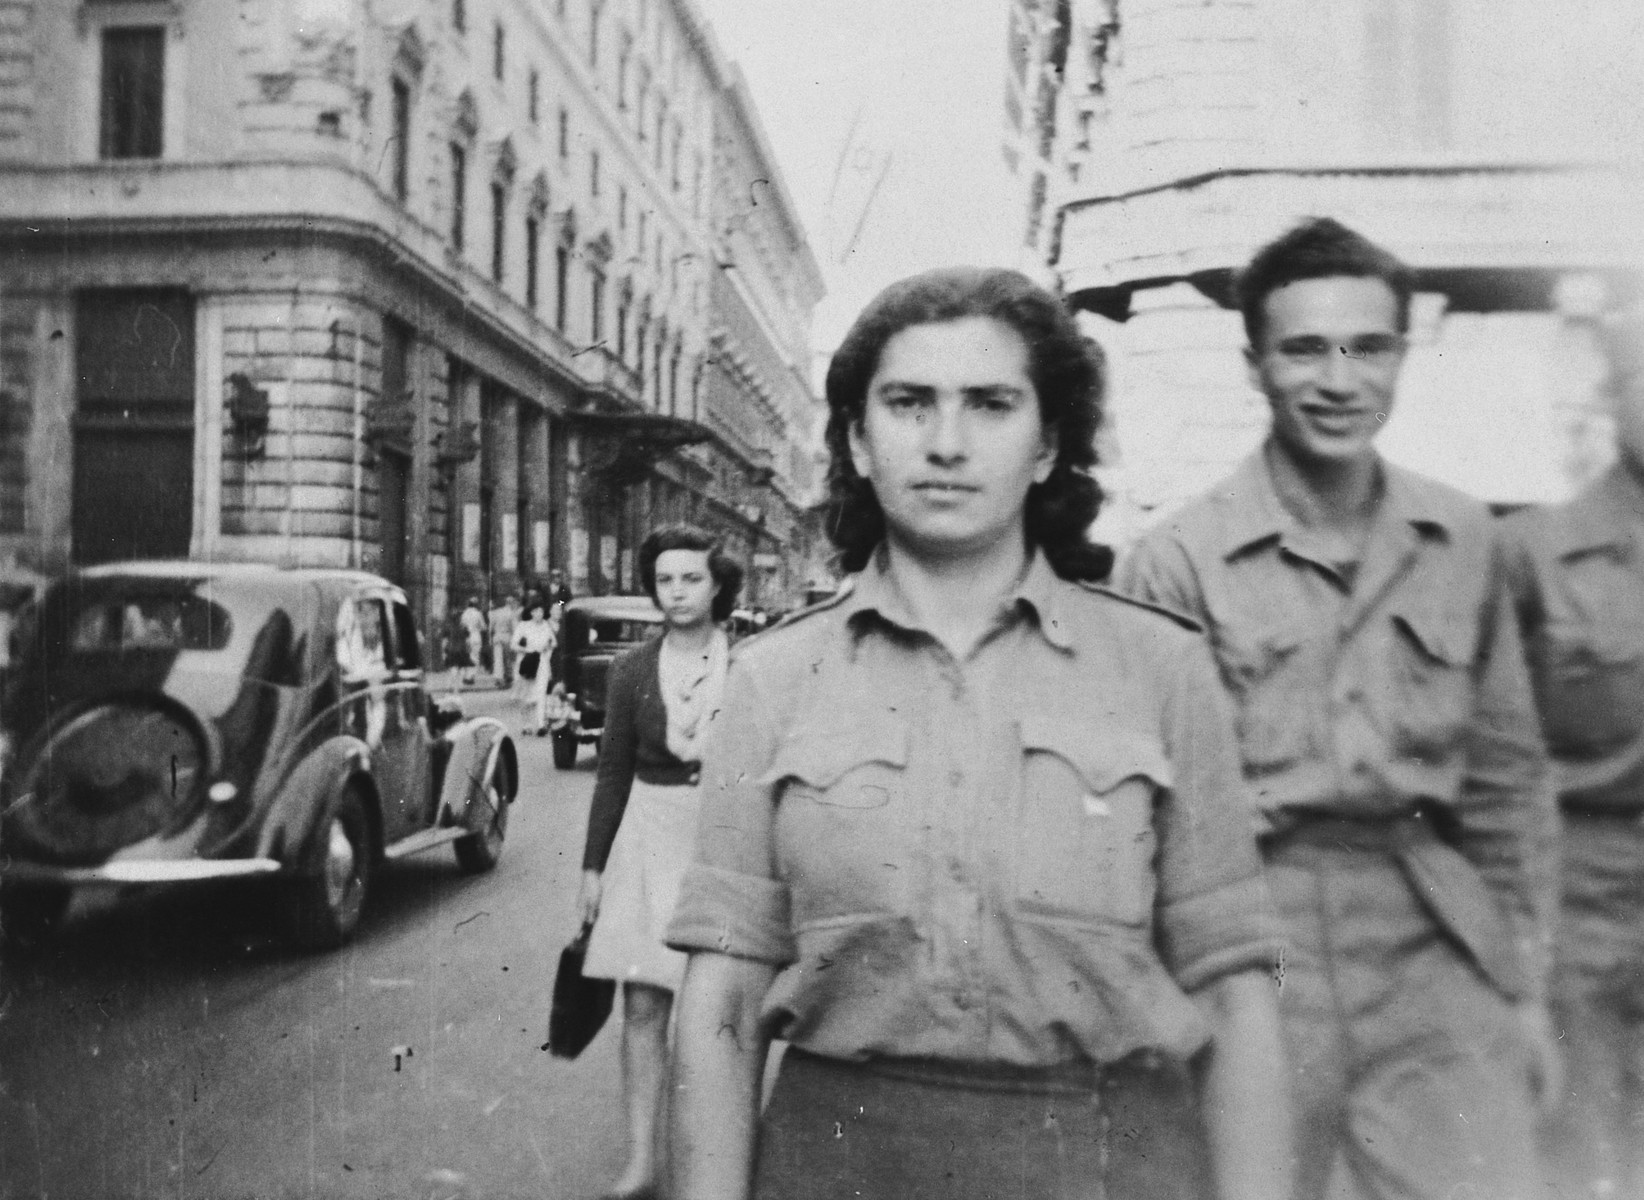 Artist Esther Lurie walks down on a street in Rome following her liberation and prior to returning to Palestine.